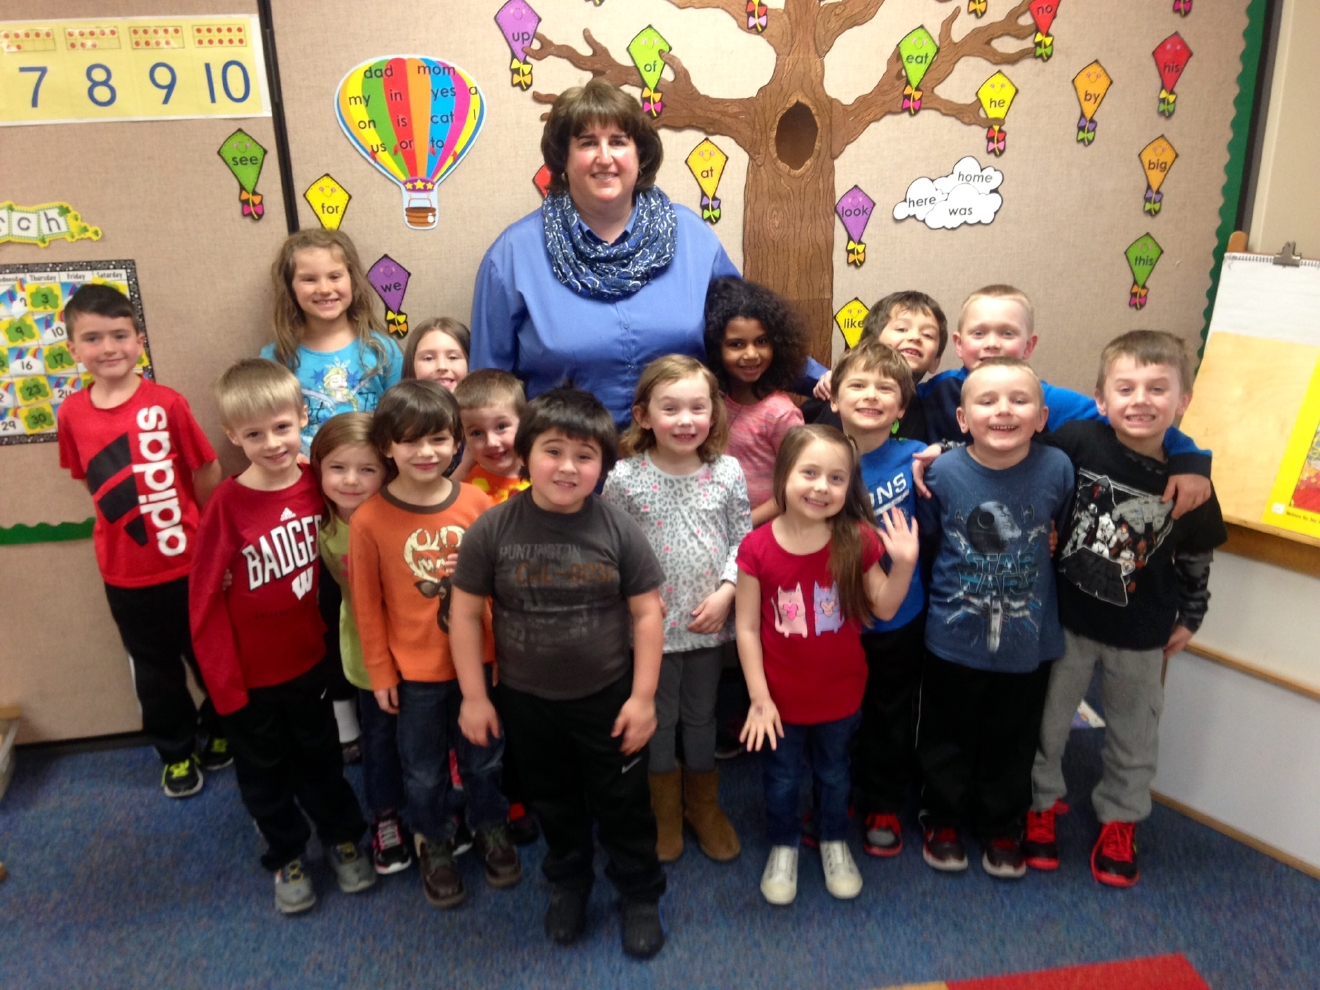 Golden Apple Award recipient Chris Skogg poses with her kindergarten class at Cormier Early Learning Center in Ashwaubenon. (WLUK/Emily Deem)